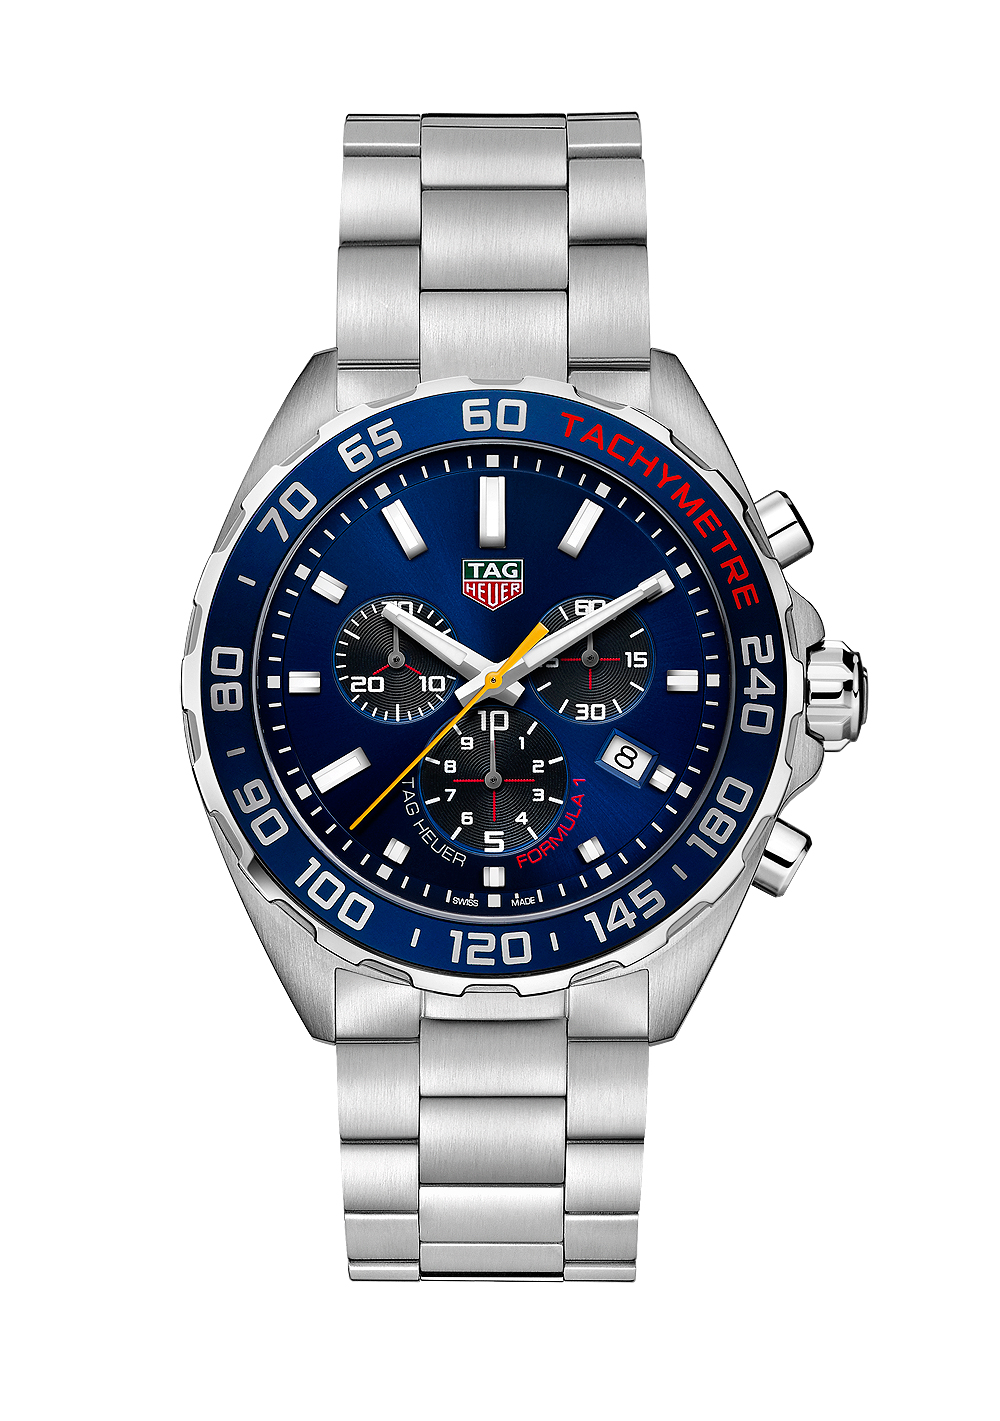 TAG Heuer Formula 1 Second-ever Special Edition Timepiece Replica With Aston Martin Red Bull